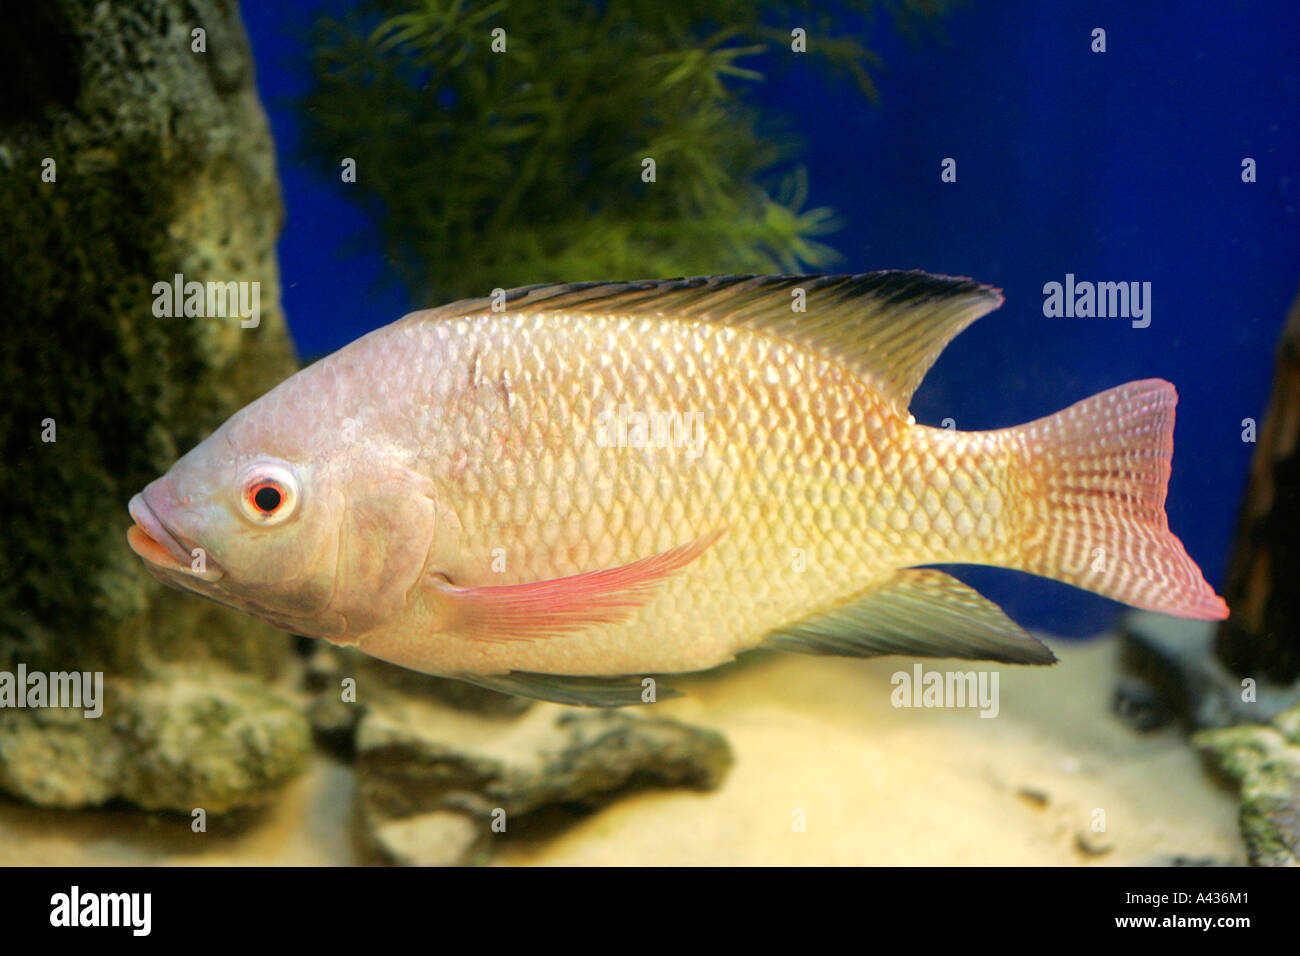 Fish Aquarium In Coimbatore - Freshwater aquarium fish goldfish stock photo fish aquarium tank animal fishes freshwater aquaria tropical goldfish